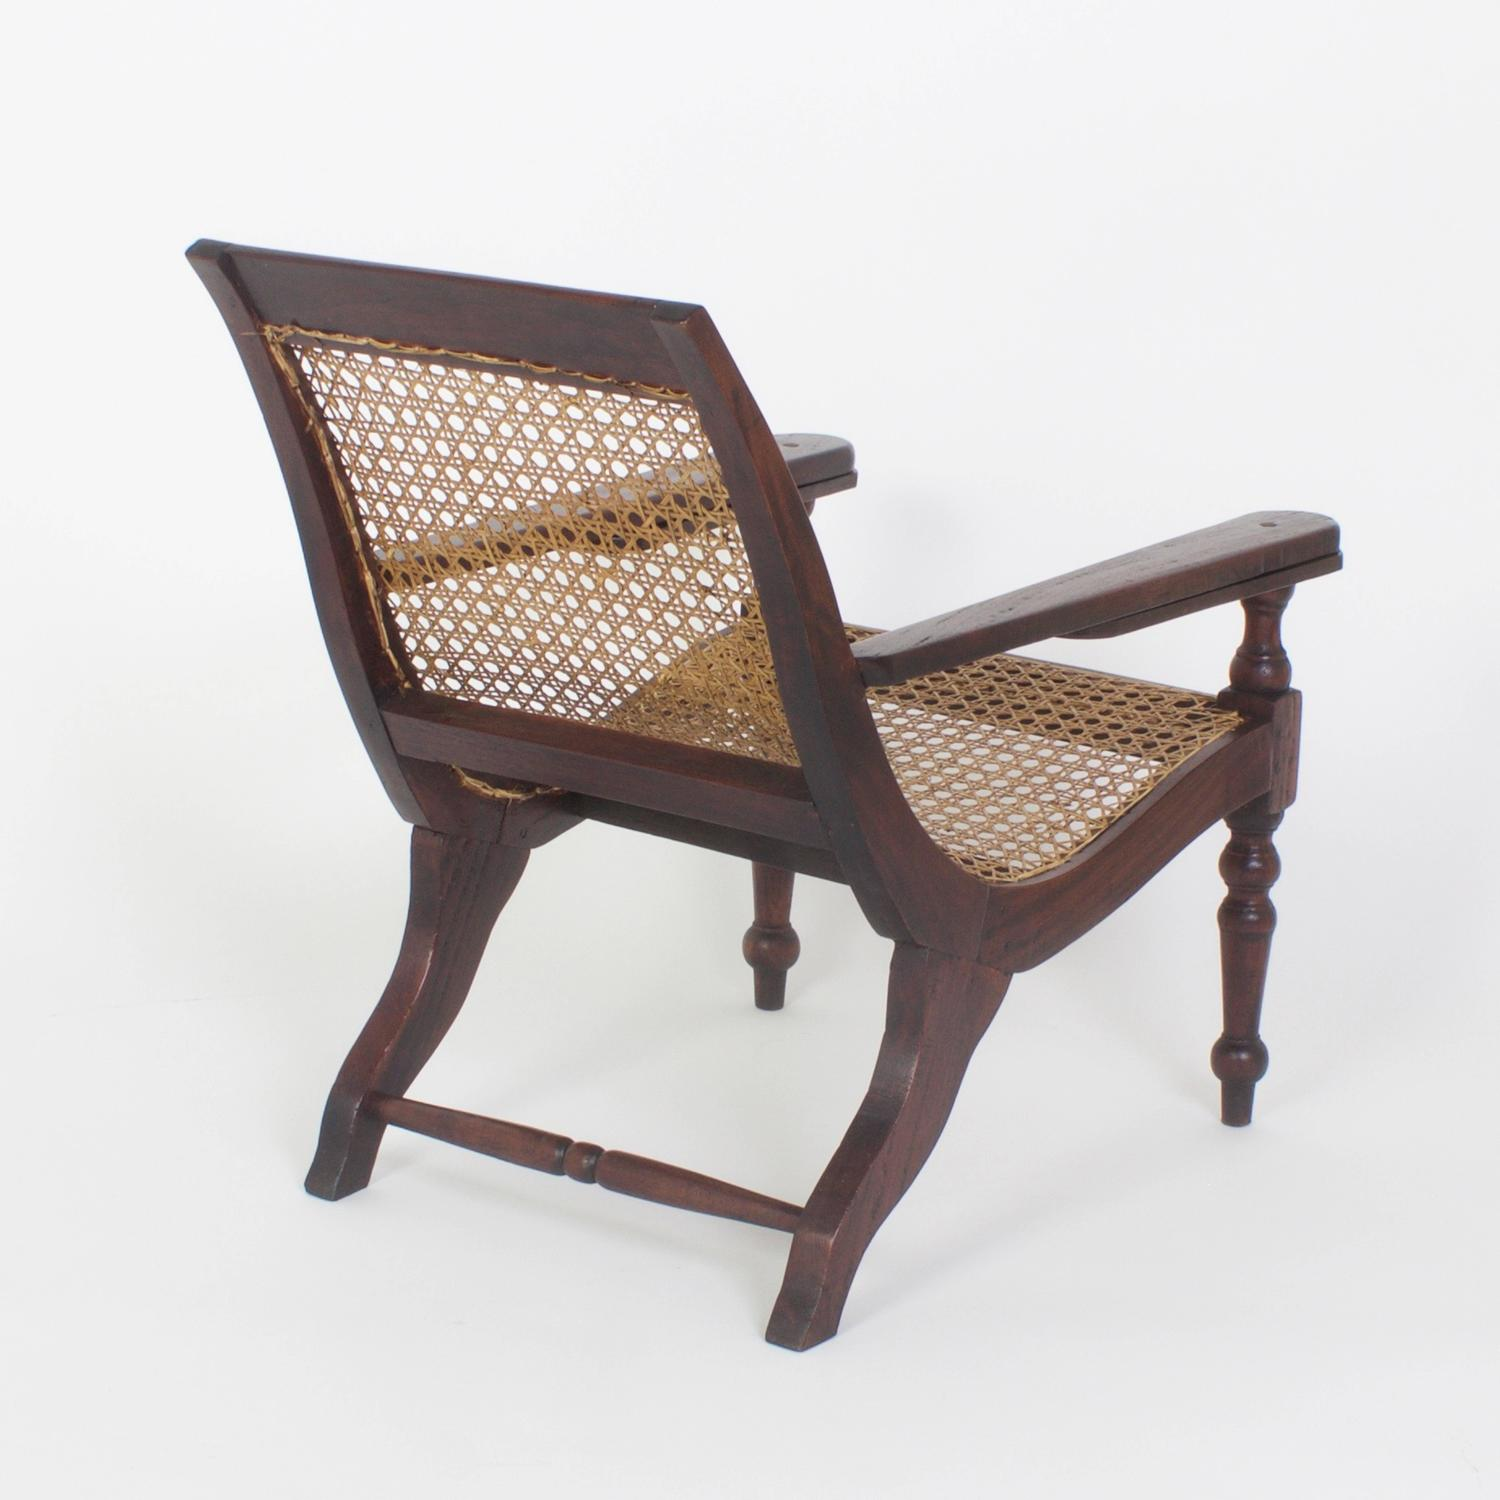 plantation style chairs folding chair kmart rare british colonial antique child 39s campaign